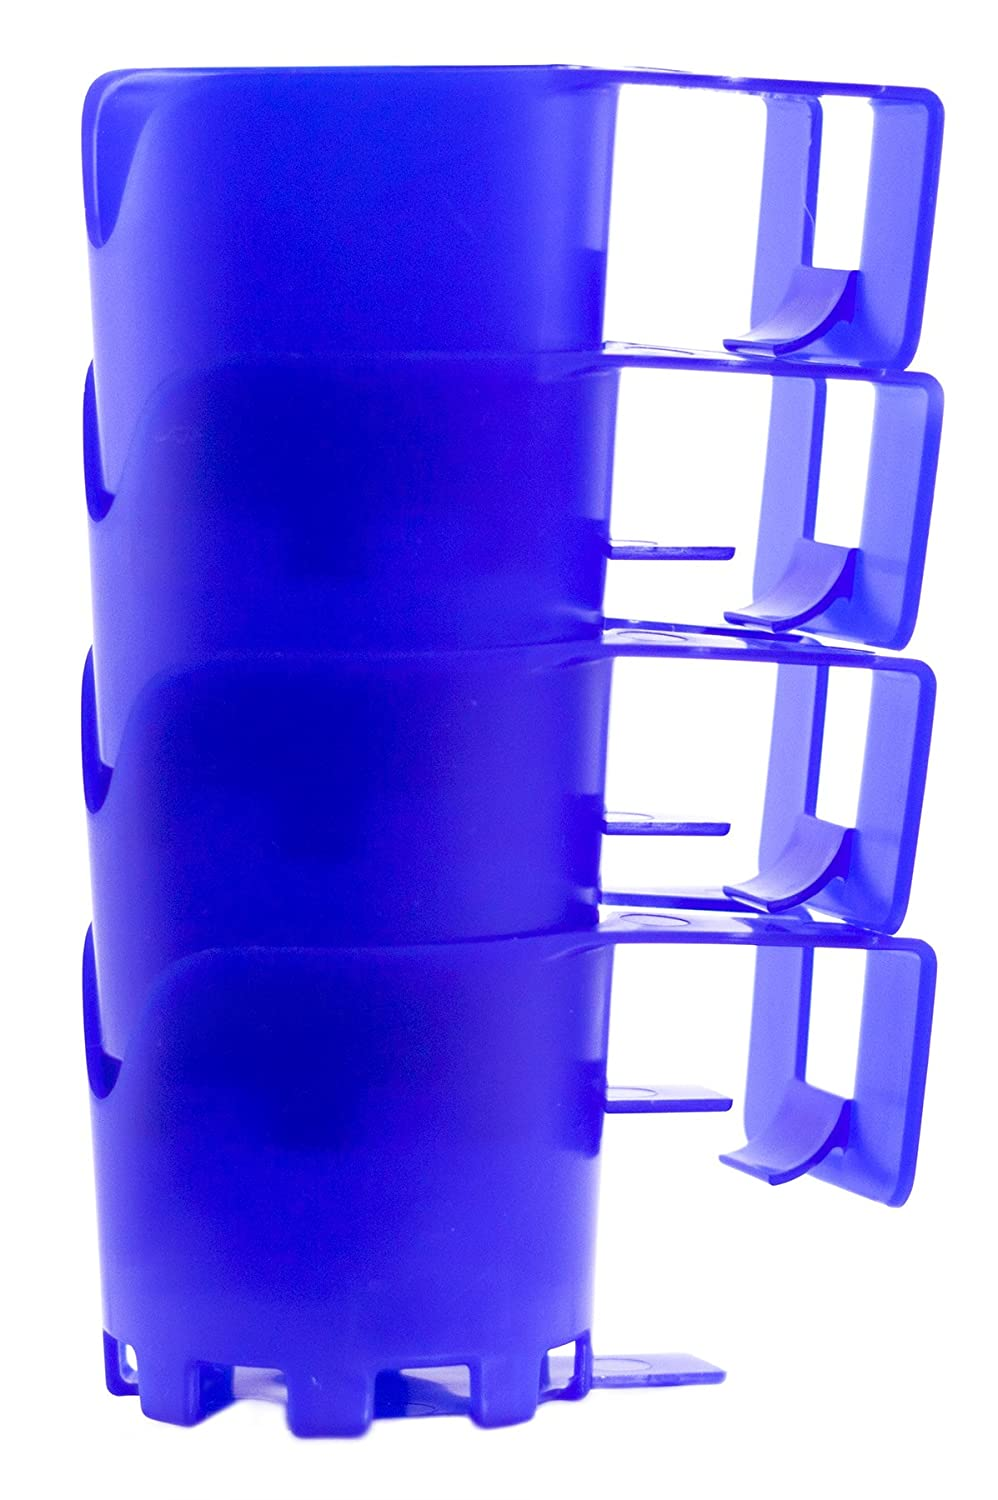 BeraTek Industries Storage Theory | Poolside Cup Holder | Designed for Above Ground Pools | Only Fits 2 inch or Less Round Top Bar | Blue Color | 4 Pack